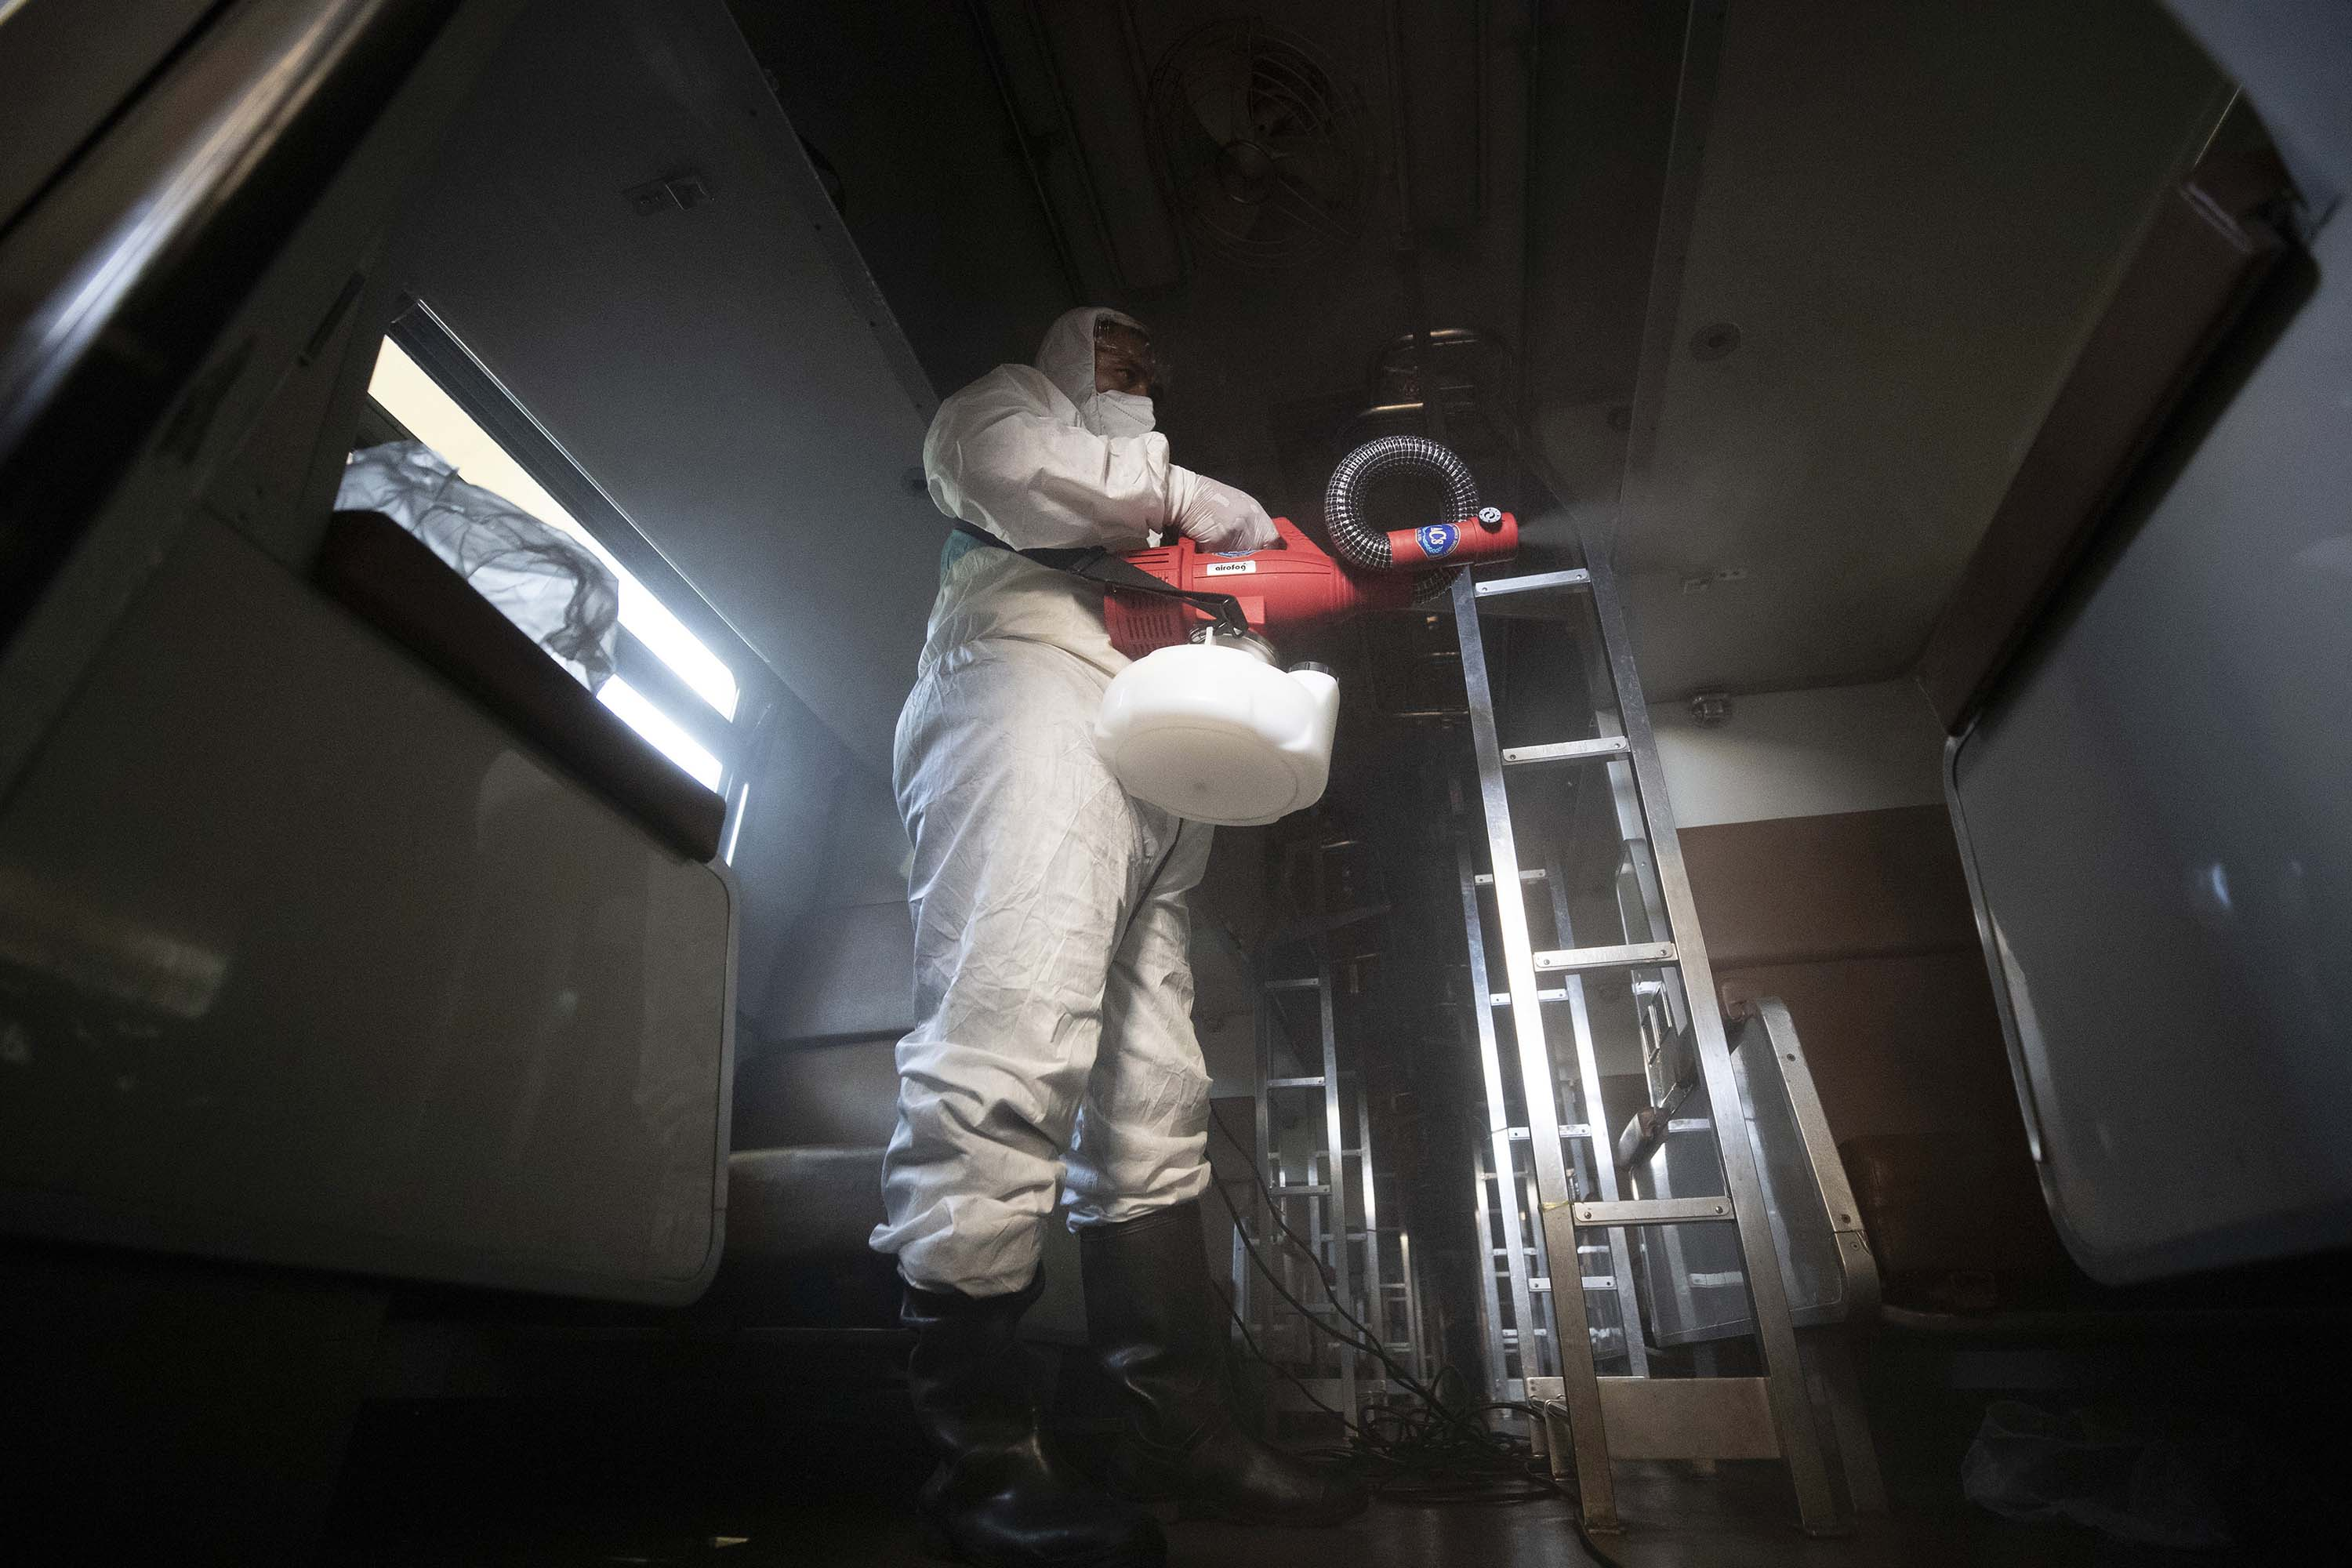 A worker disinfects a train in effort to prevent the spread of the coronavirus, at Hua Lamphong Railway Station in Bangkok, Thailand, on Friday.